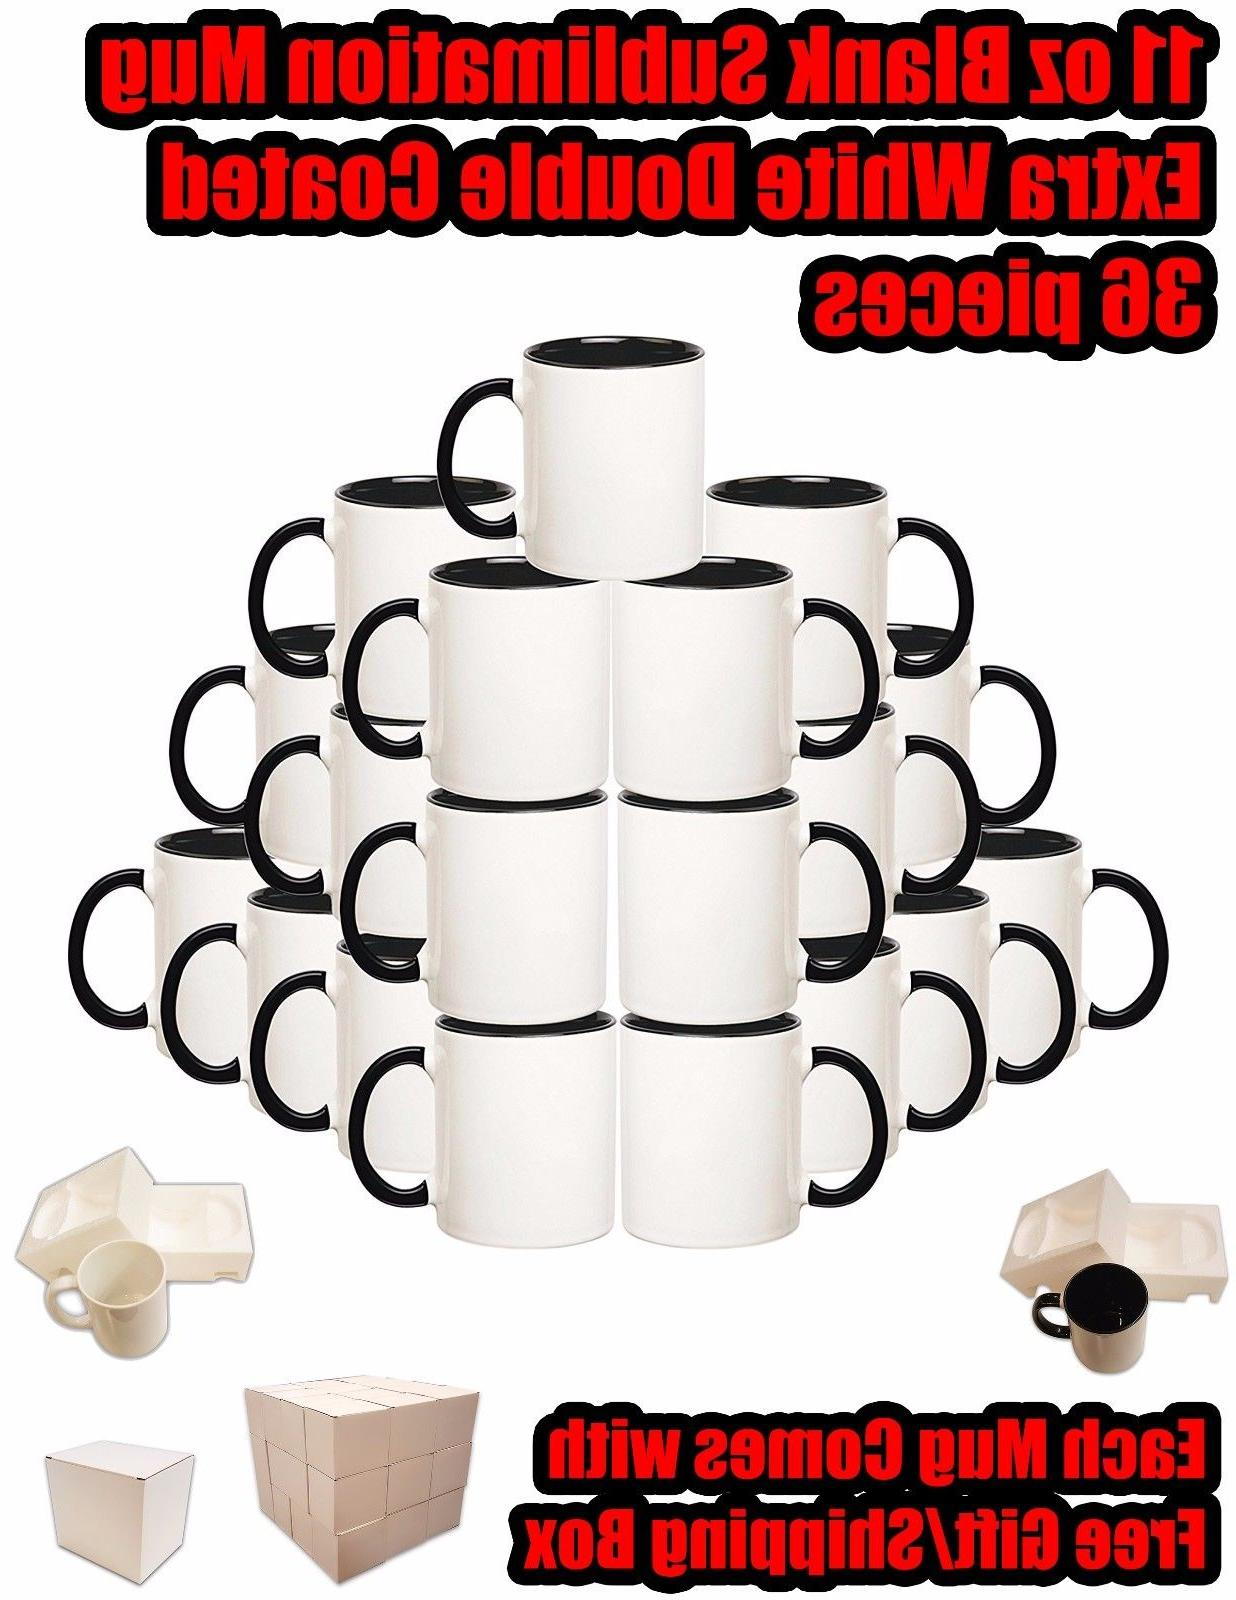 36 pieces extra blank sublimation coated ceramic